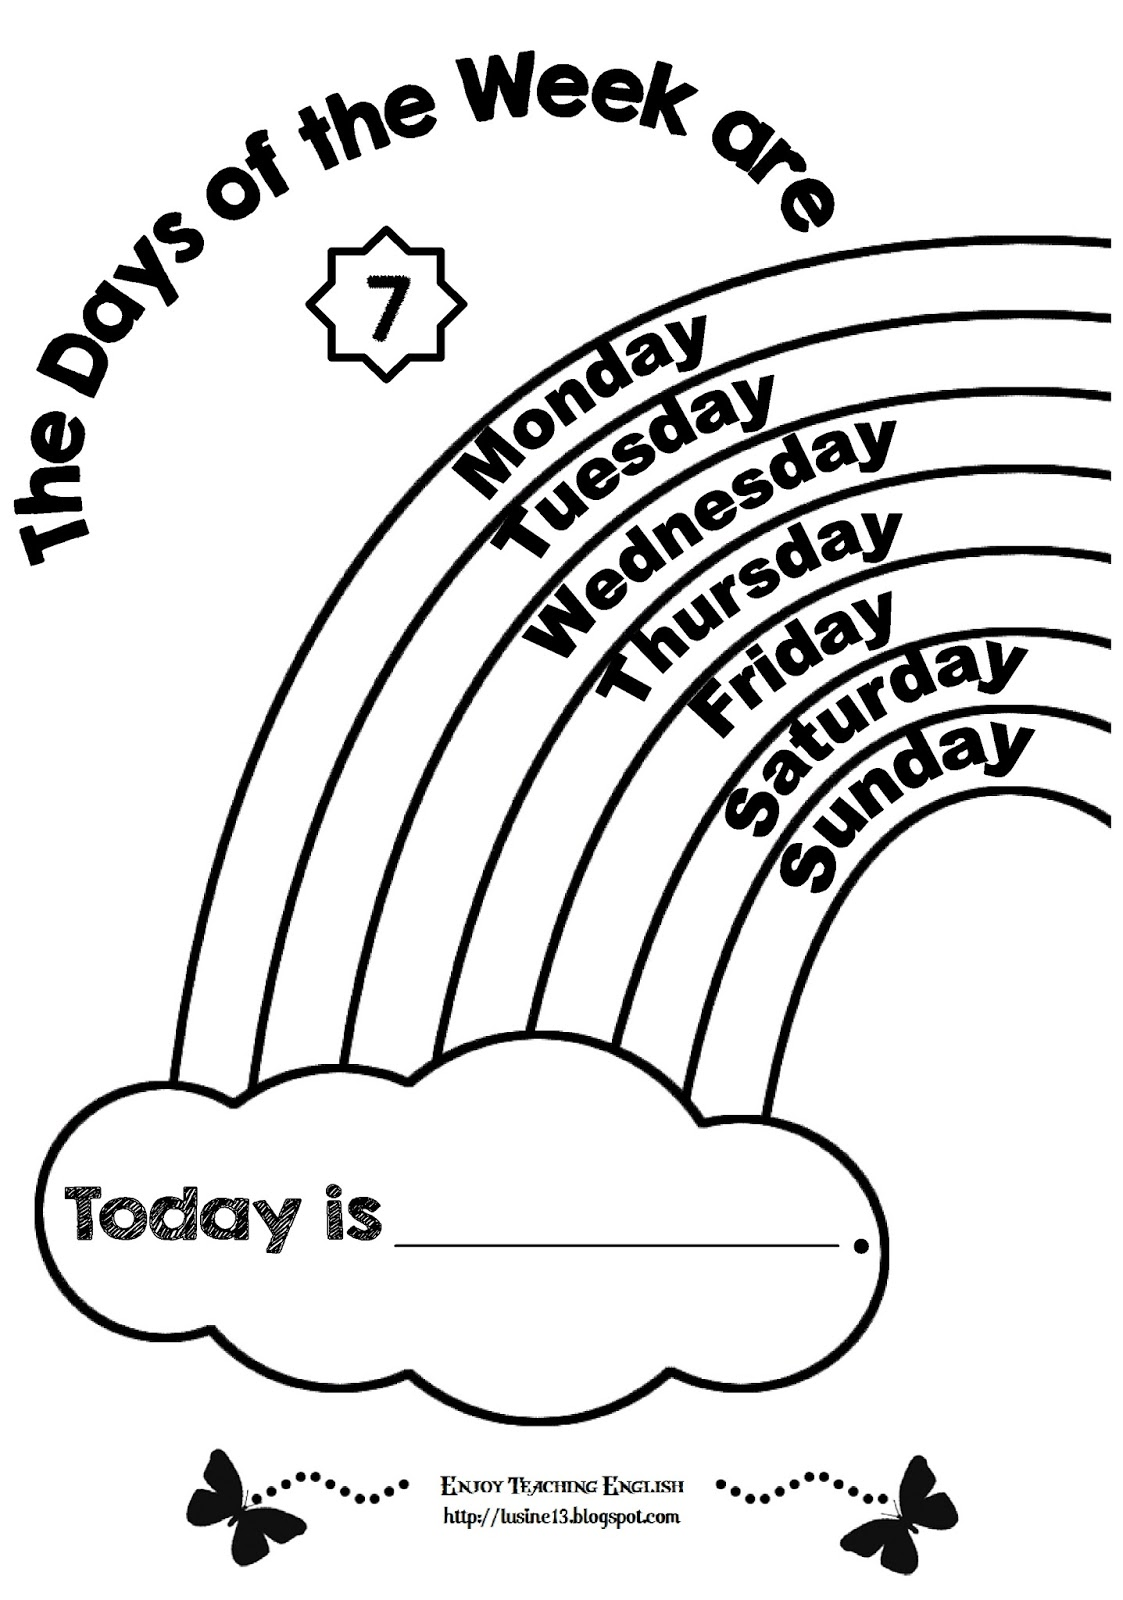 166 Days Of The Week free clipart.